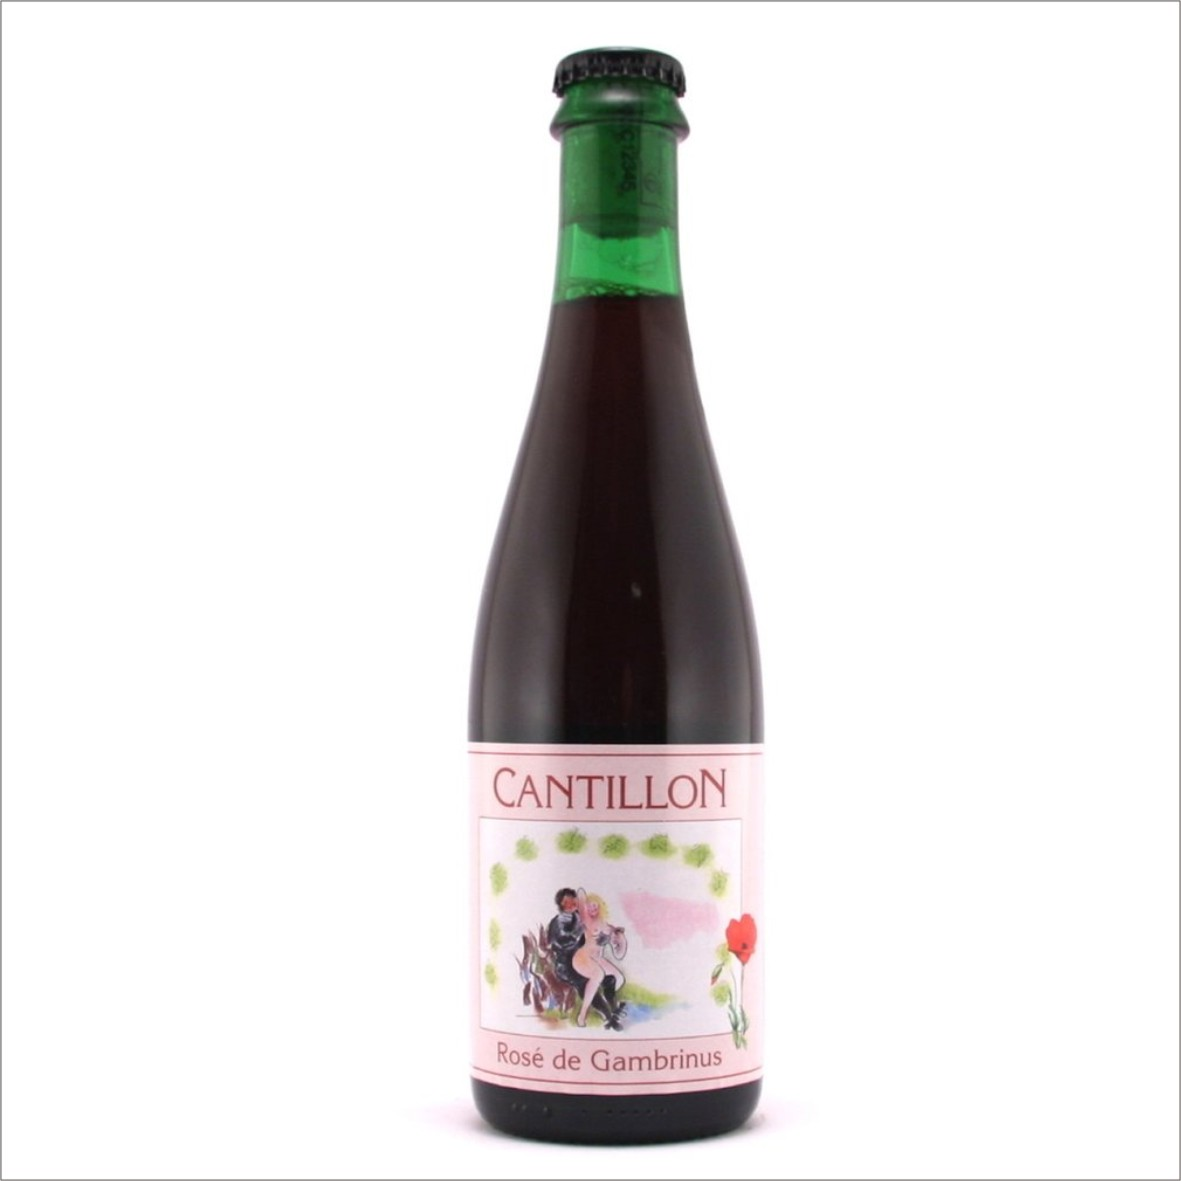 Cantillon-Rose-de-Gambrinus-375-1_1024x1024